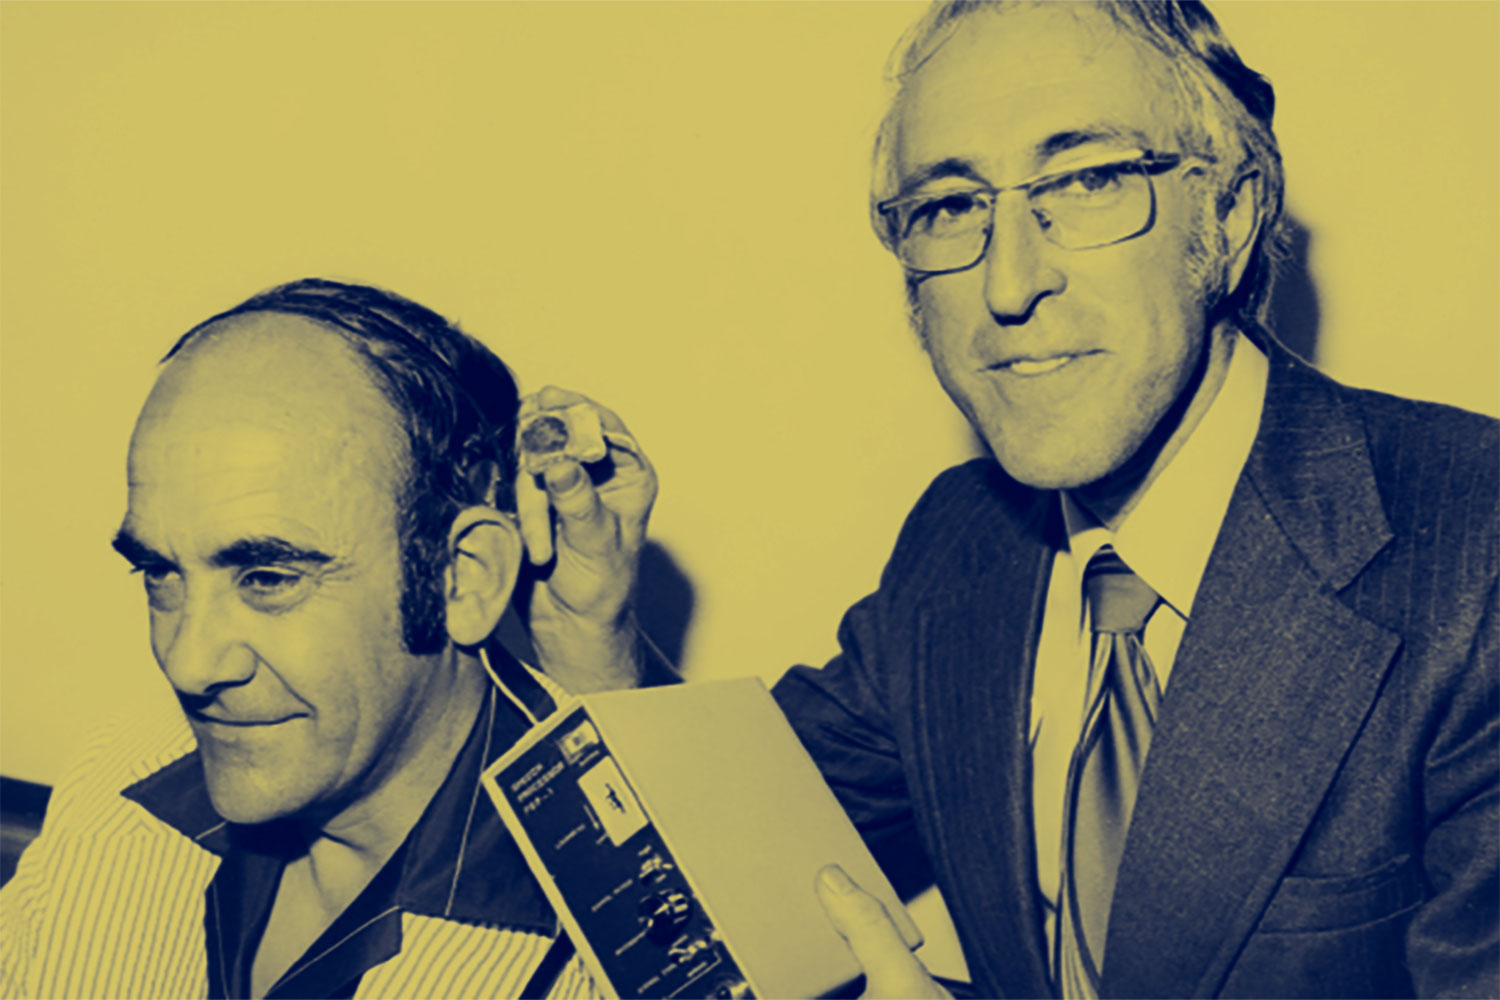 Graeme Clark and the first Cochlear implant recipient